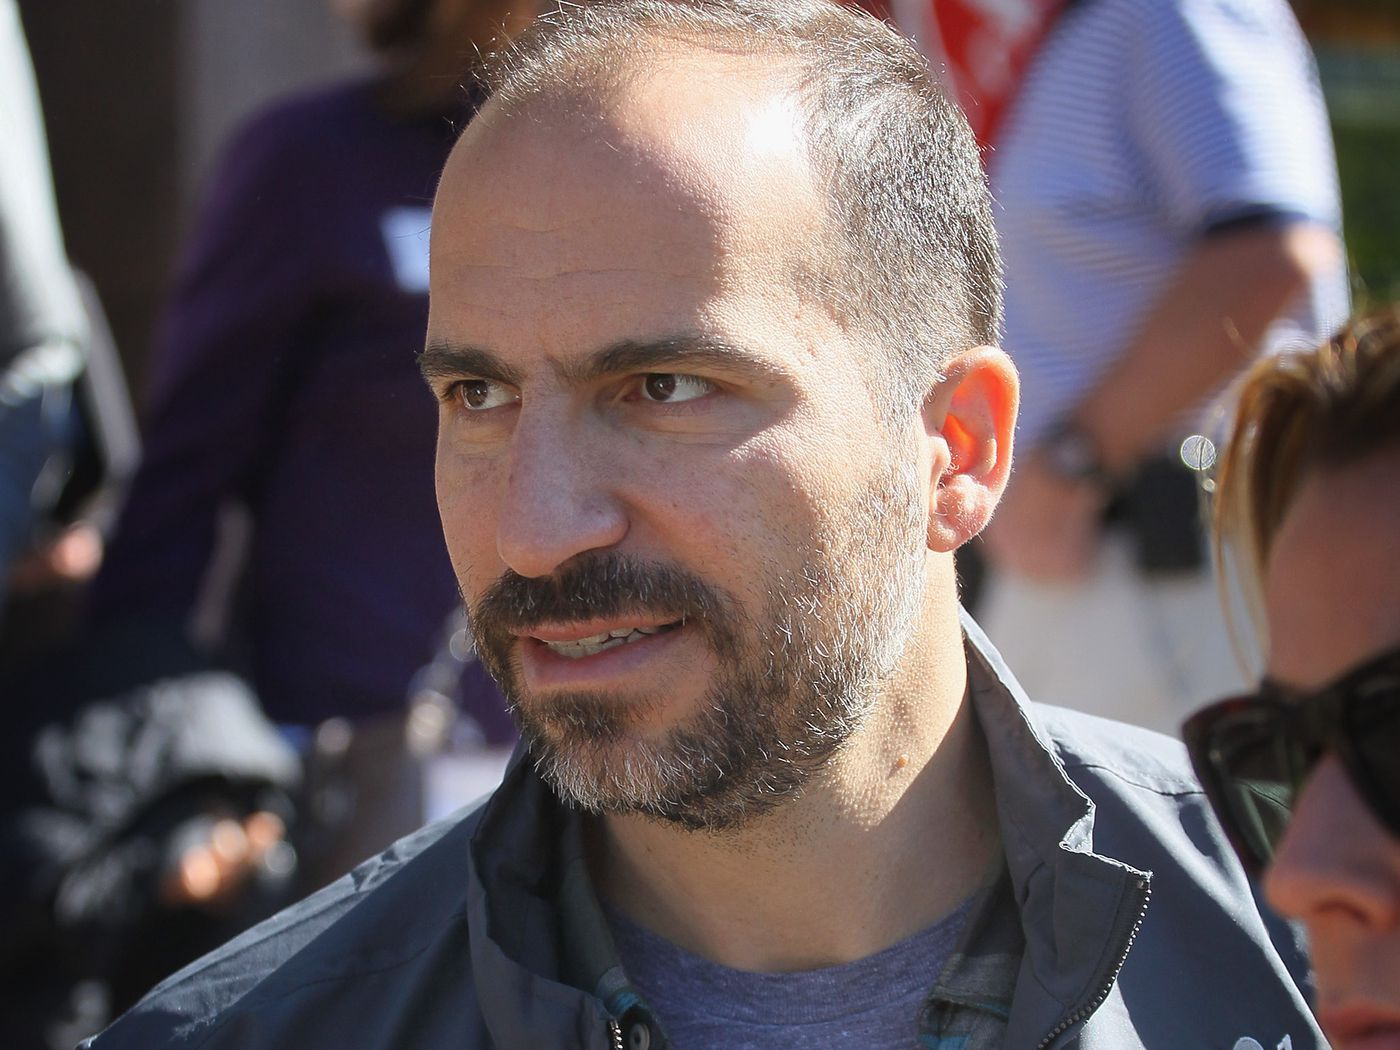 Watch: This Dara Khosrowshahi interview reveals Uber's CEO